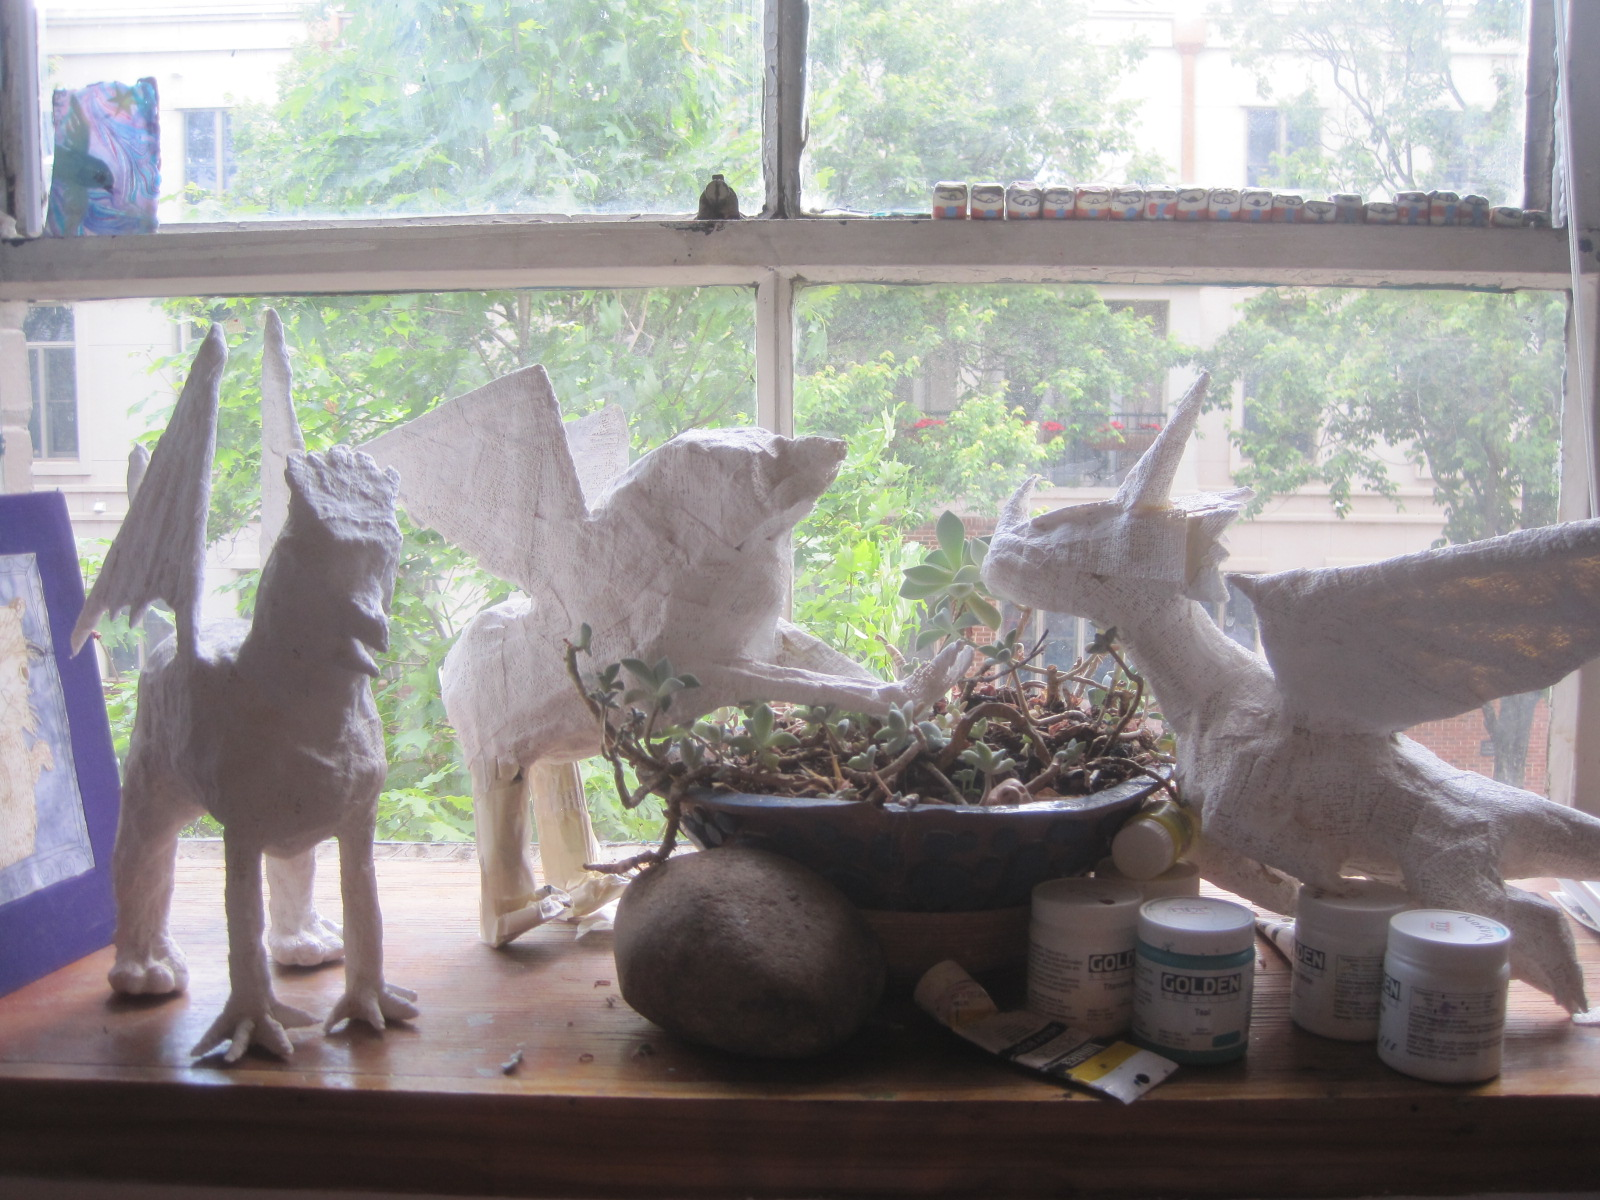 Plaster sculptures by myself andstudents. Two gryphons and a dragon.